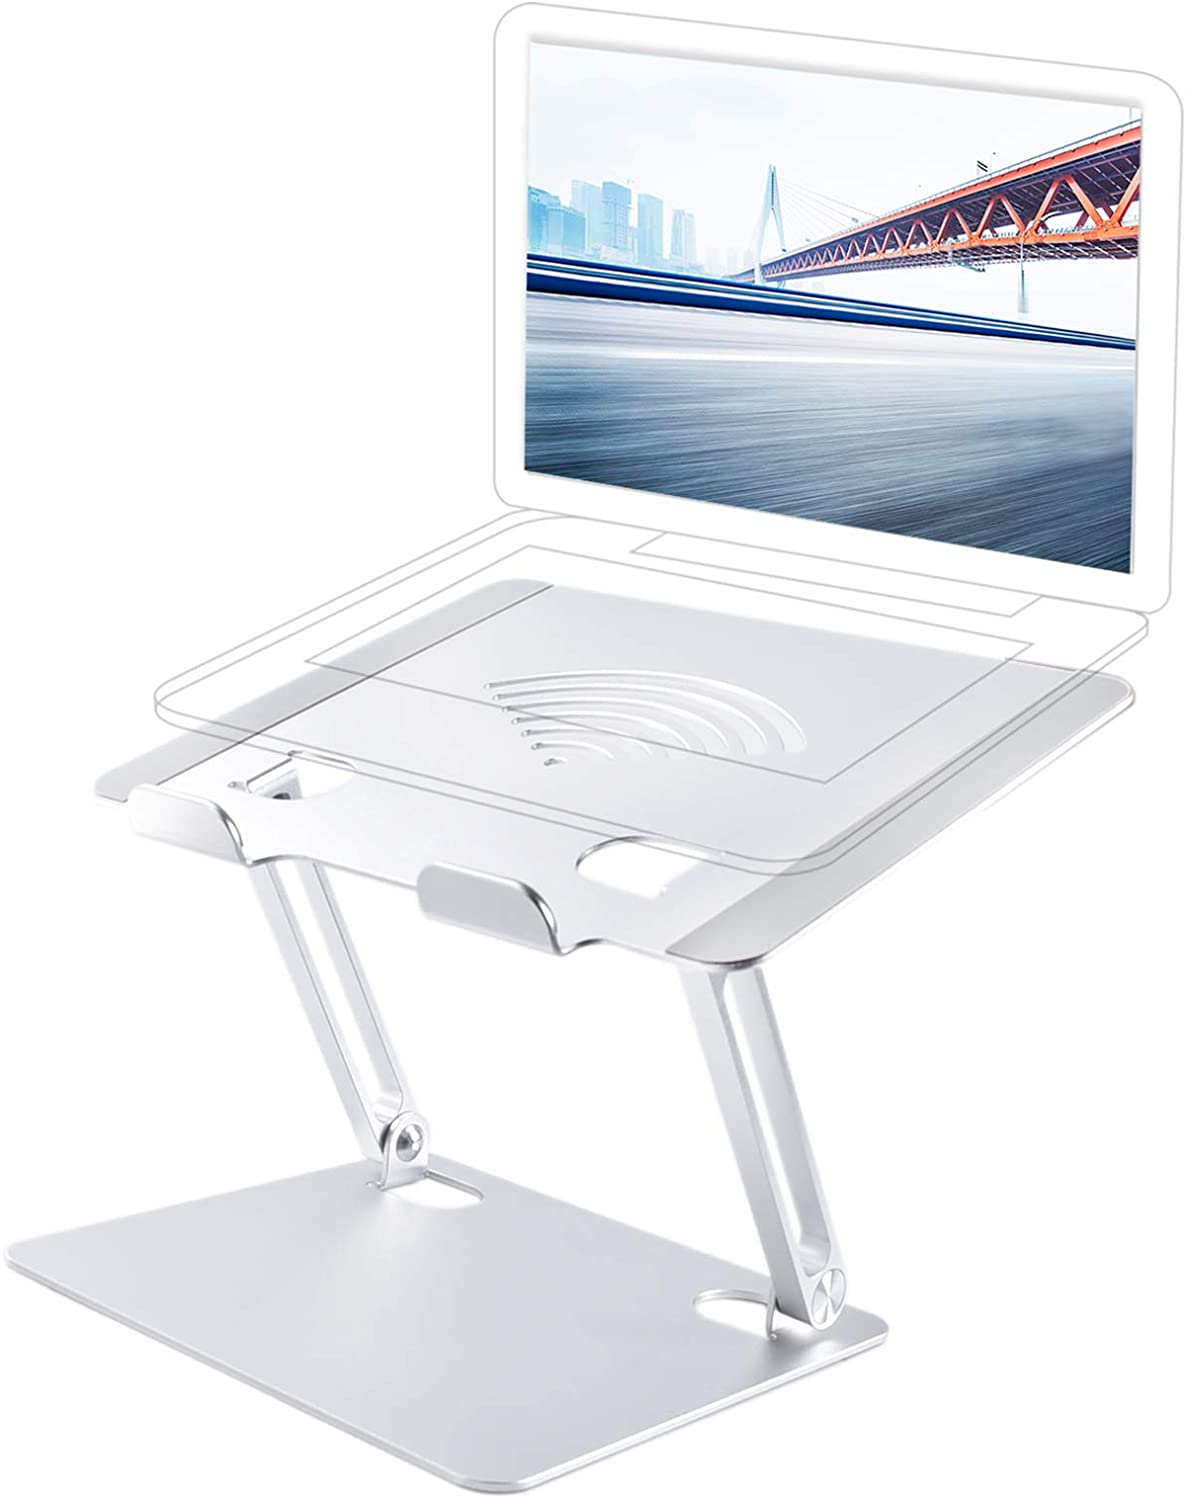 Laptop Stand, Portable Adjustable Notebook Holder Riser for MacBook Air Pro All Laptops Up to 17